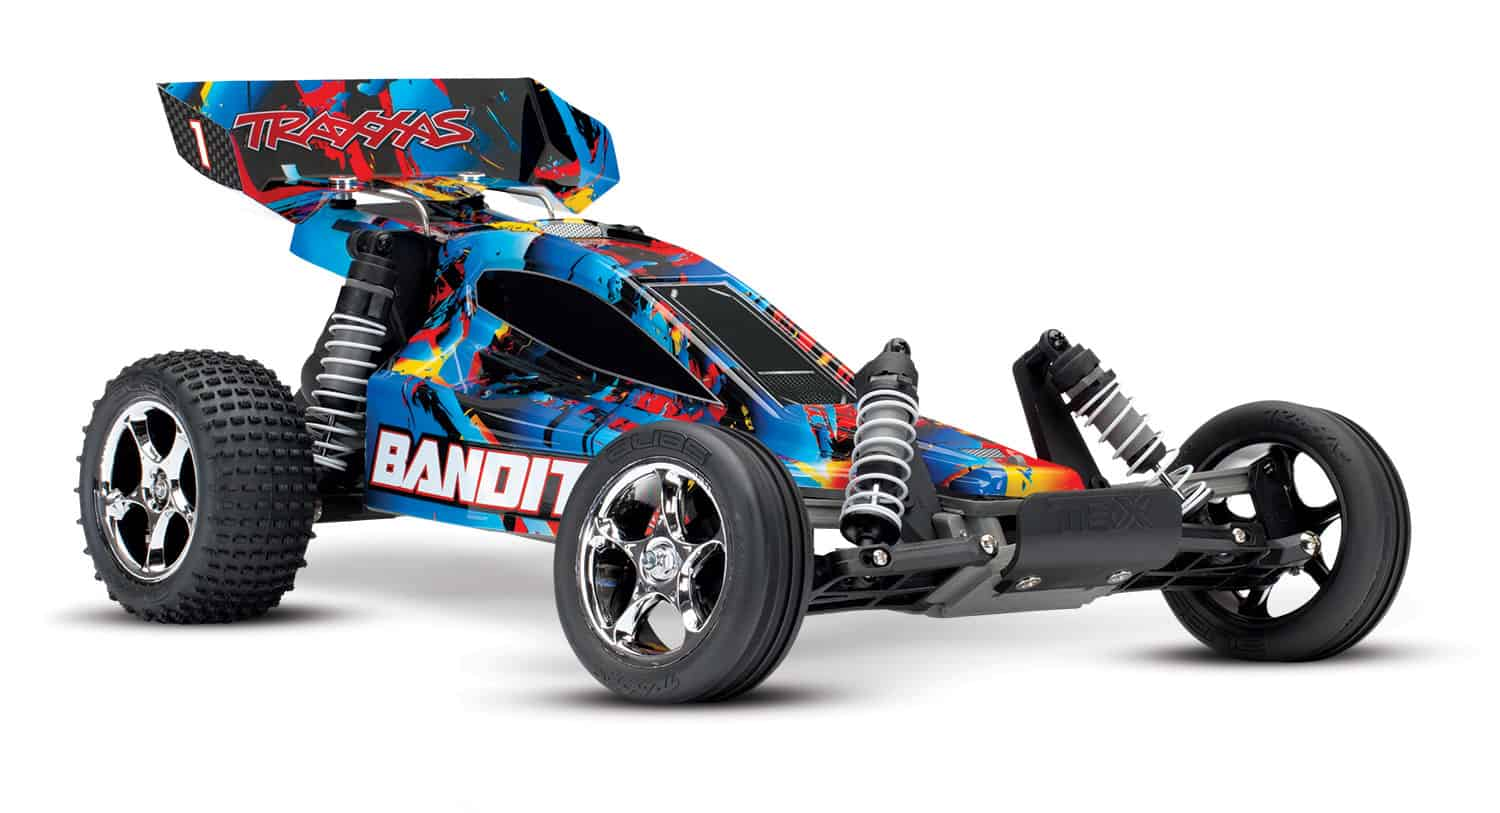 Traxxas Bandit and Rustler Get New Looks and New (Lower) Prices